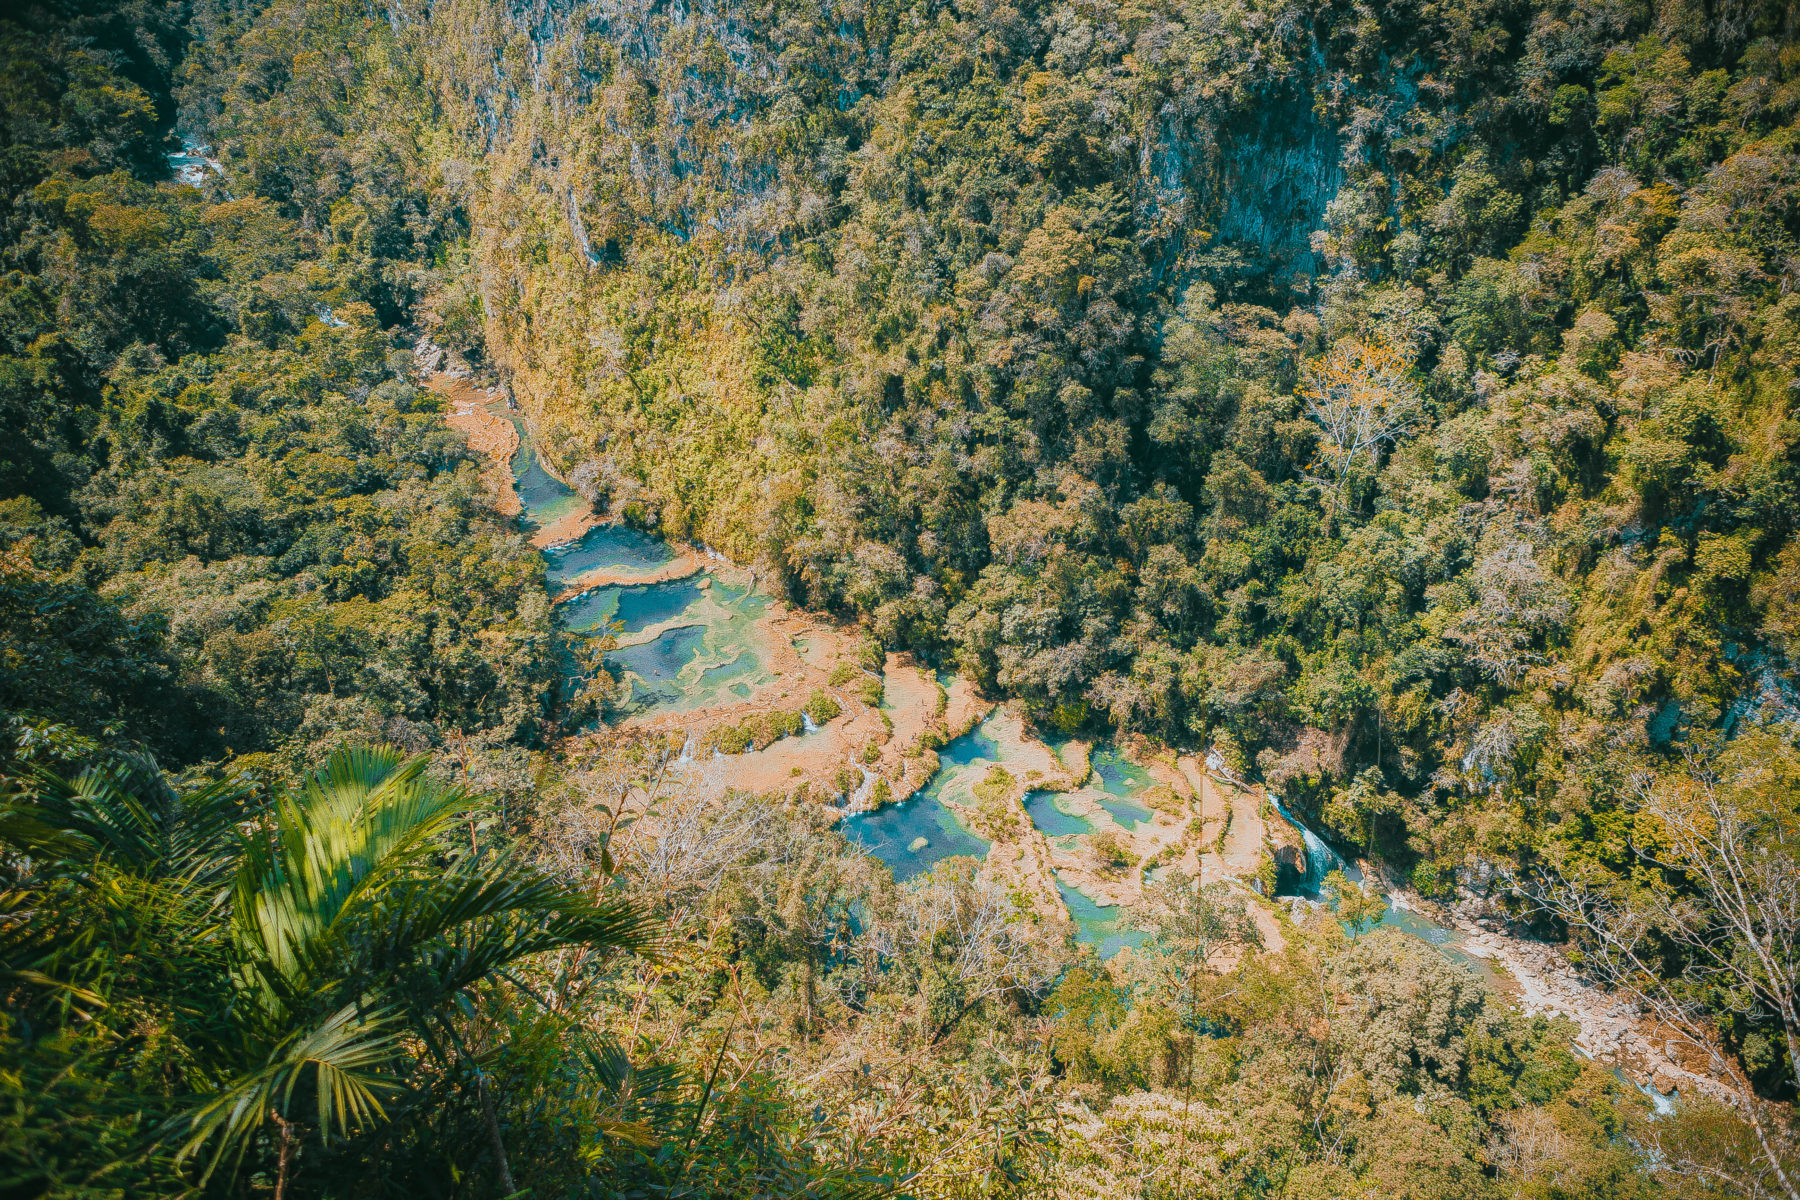 guatemala semuc champey turquoise pools jungle green humid swim adventure far away hidden paradise